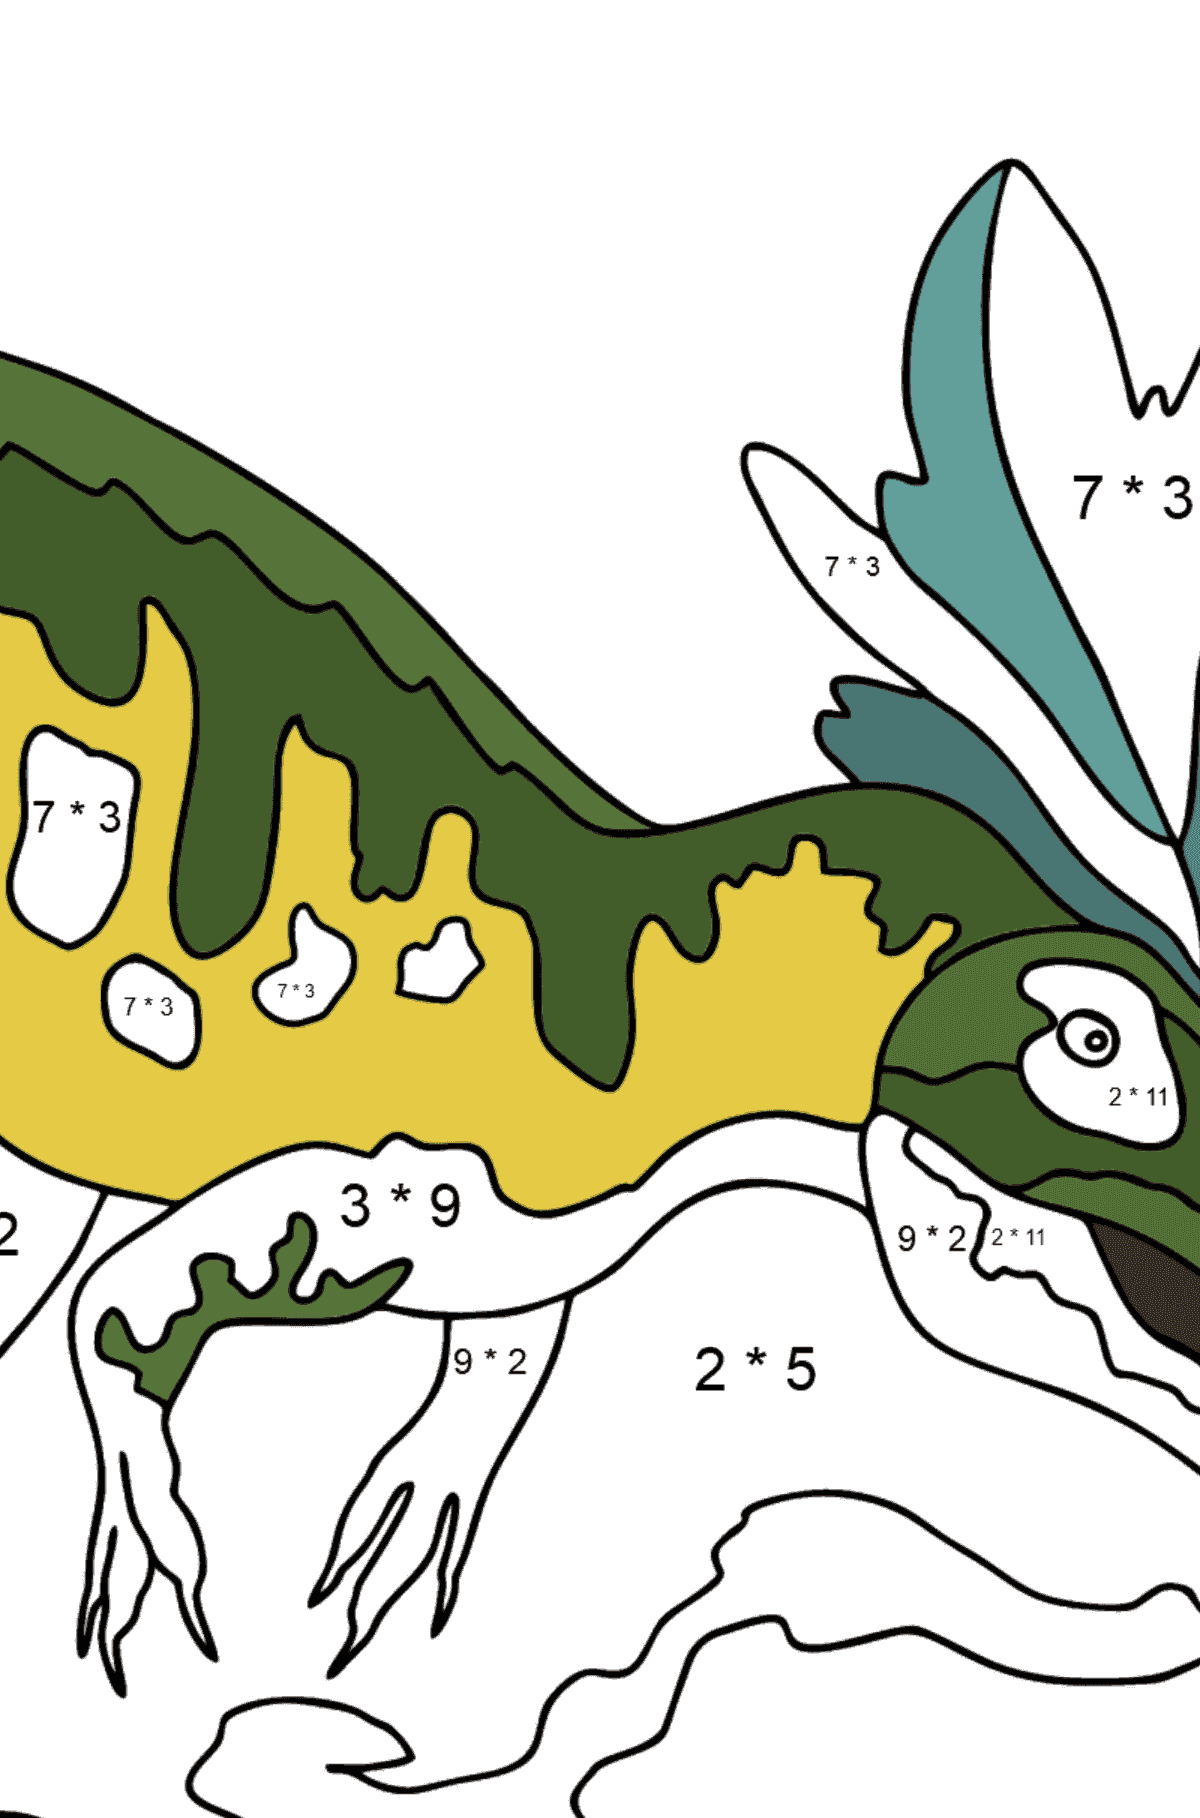 Coloring Page - Allosaurus - A Well-Researched Dinosaur - Math Coloring - Multiplication for Kids